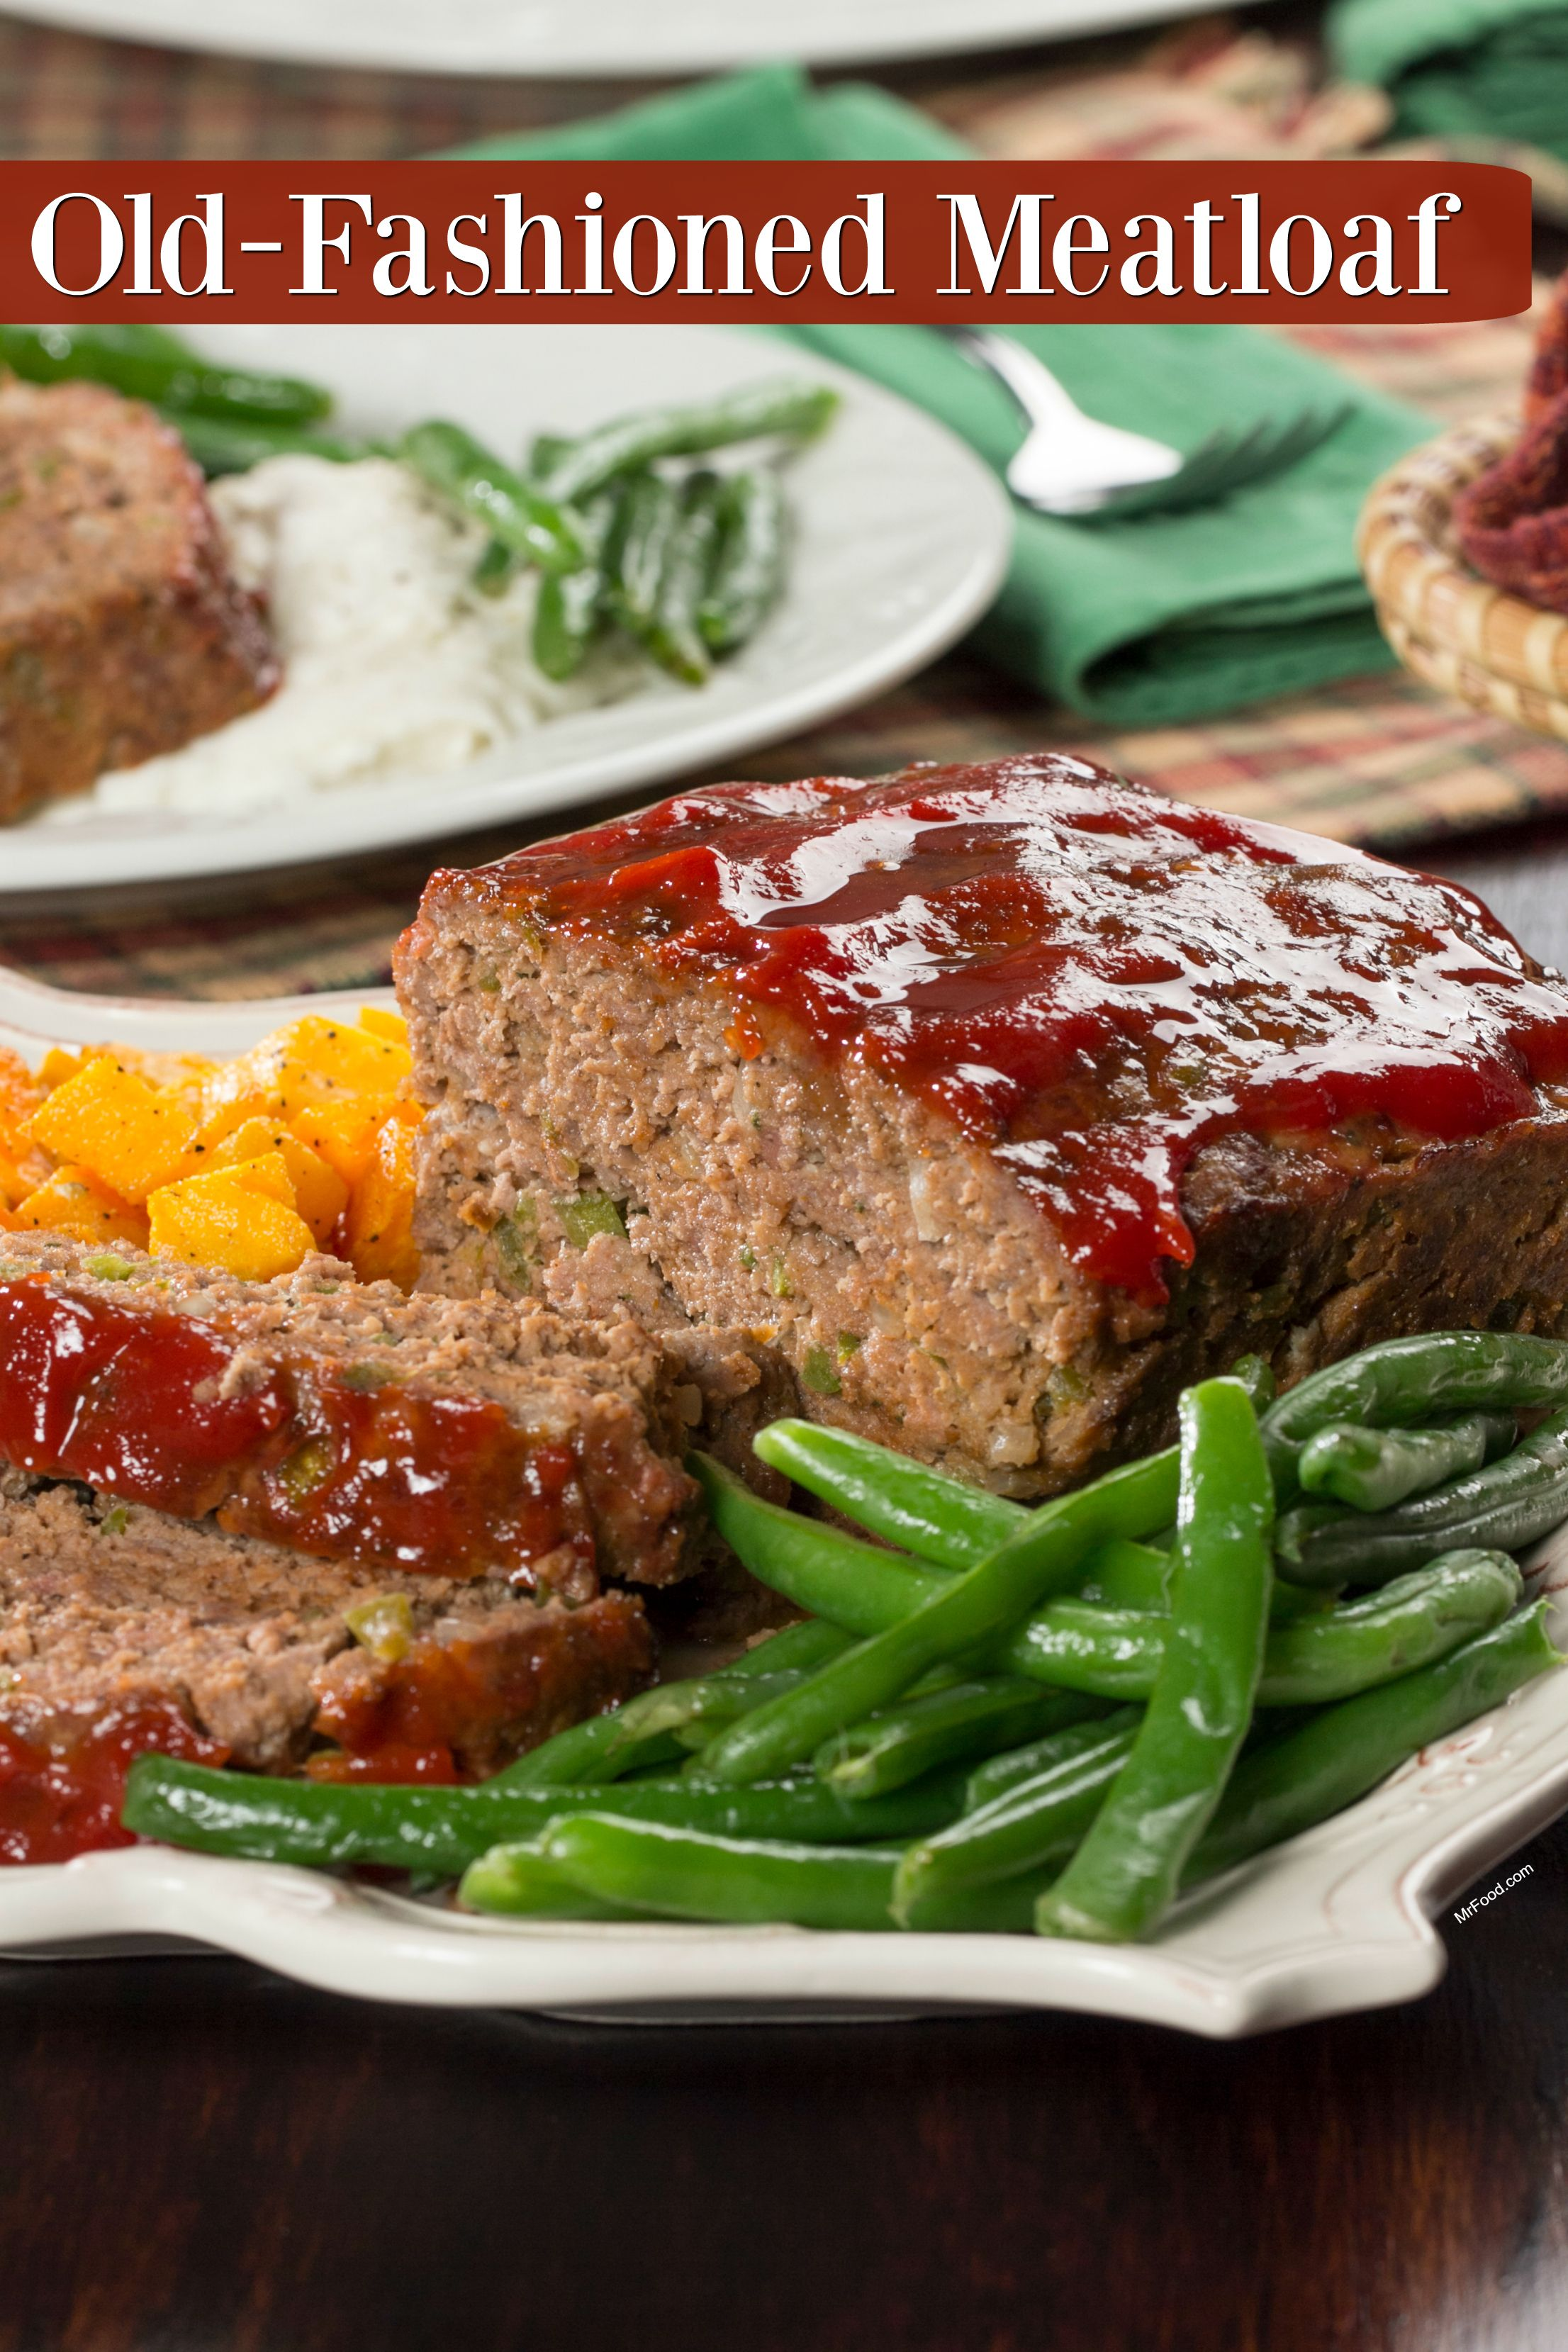 Old fashioned quaker oats meatloaf recipe 30